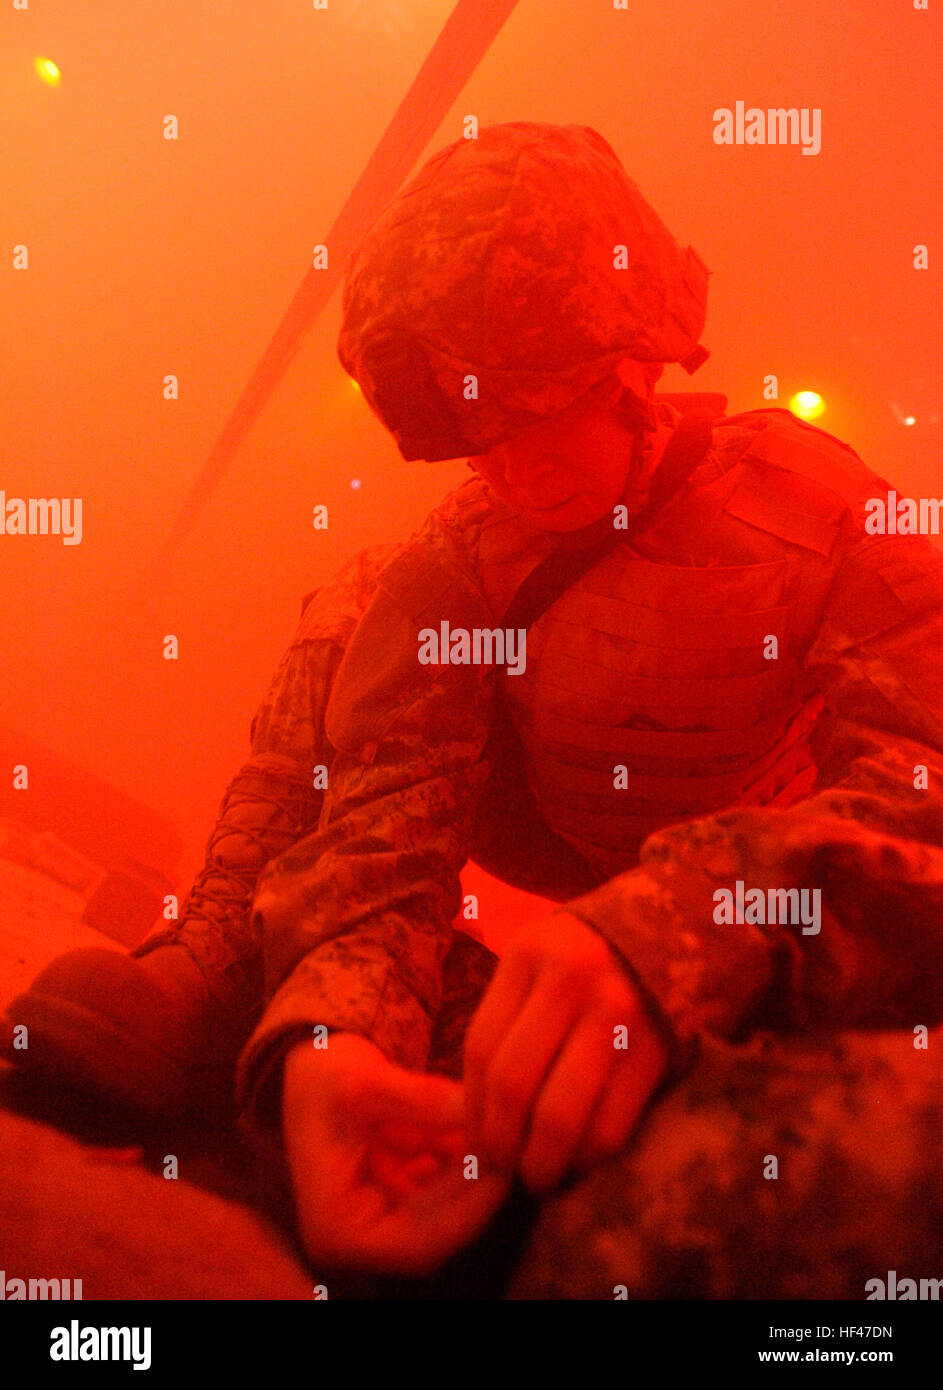 Staff Sgt. Kelly Eitreim Of The Pennsylvania Army National Guard's ...